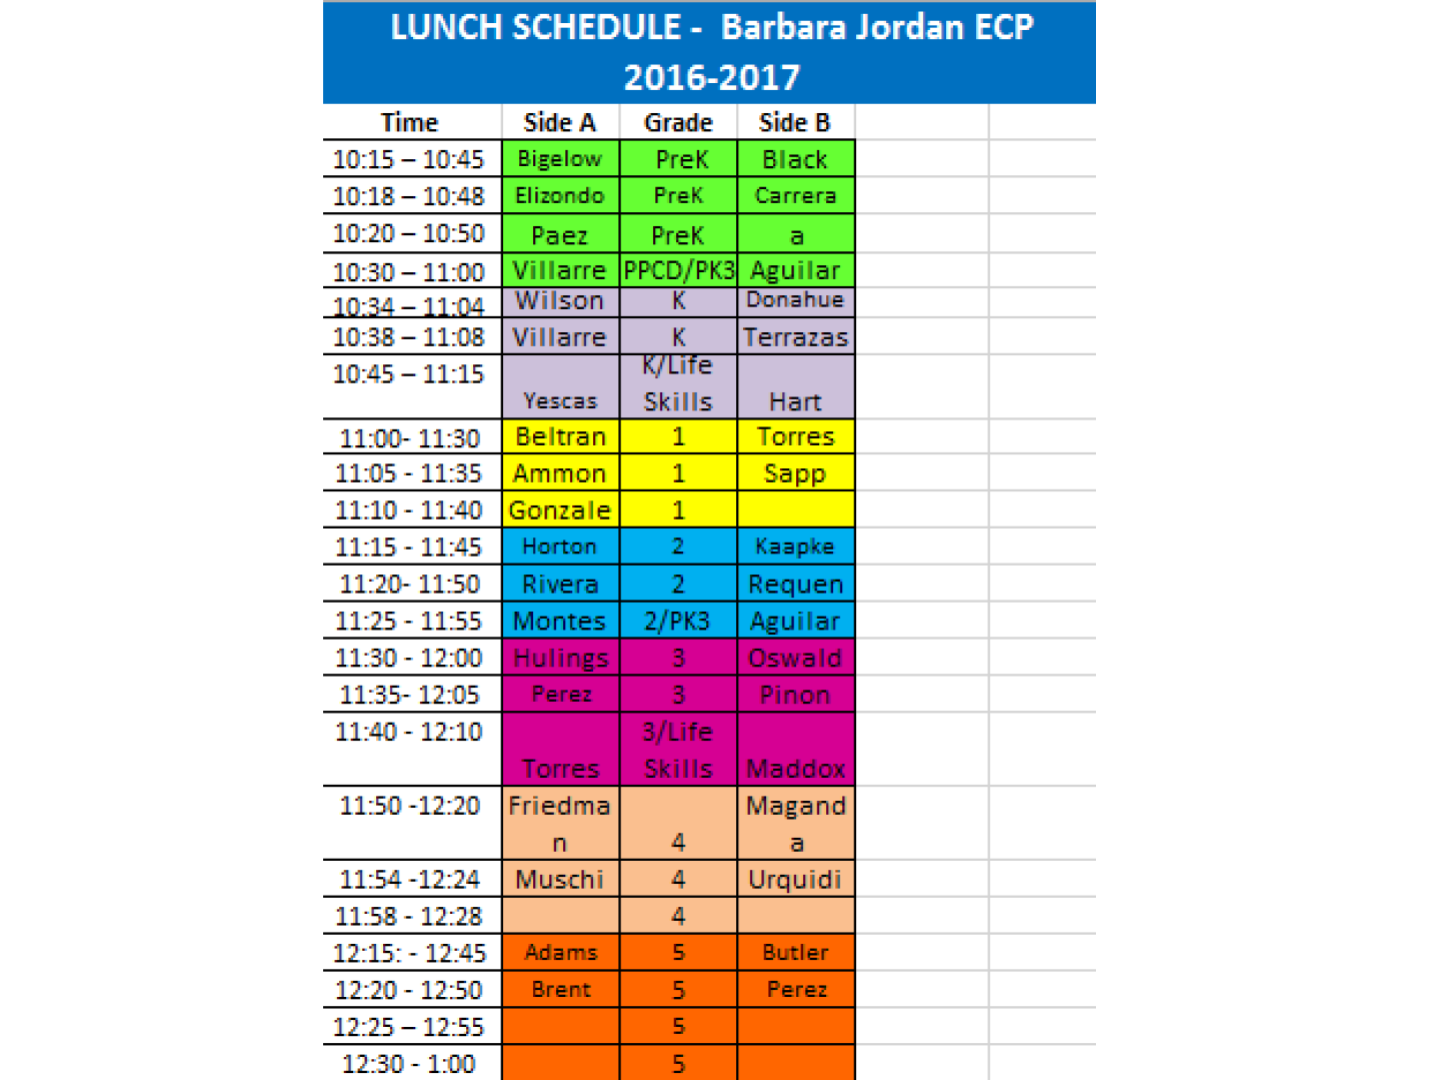 BJECP Lunch Schedule